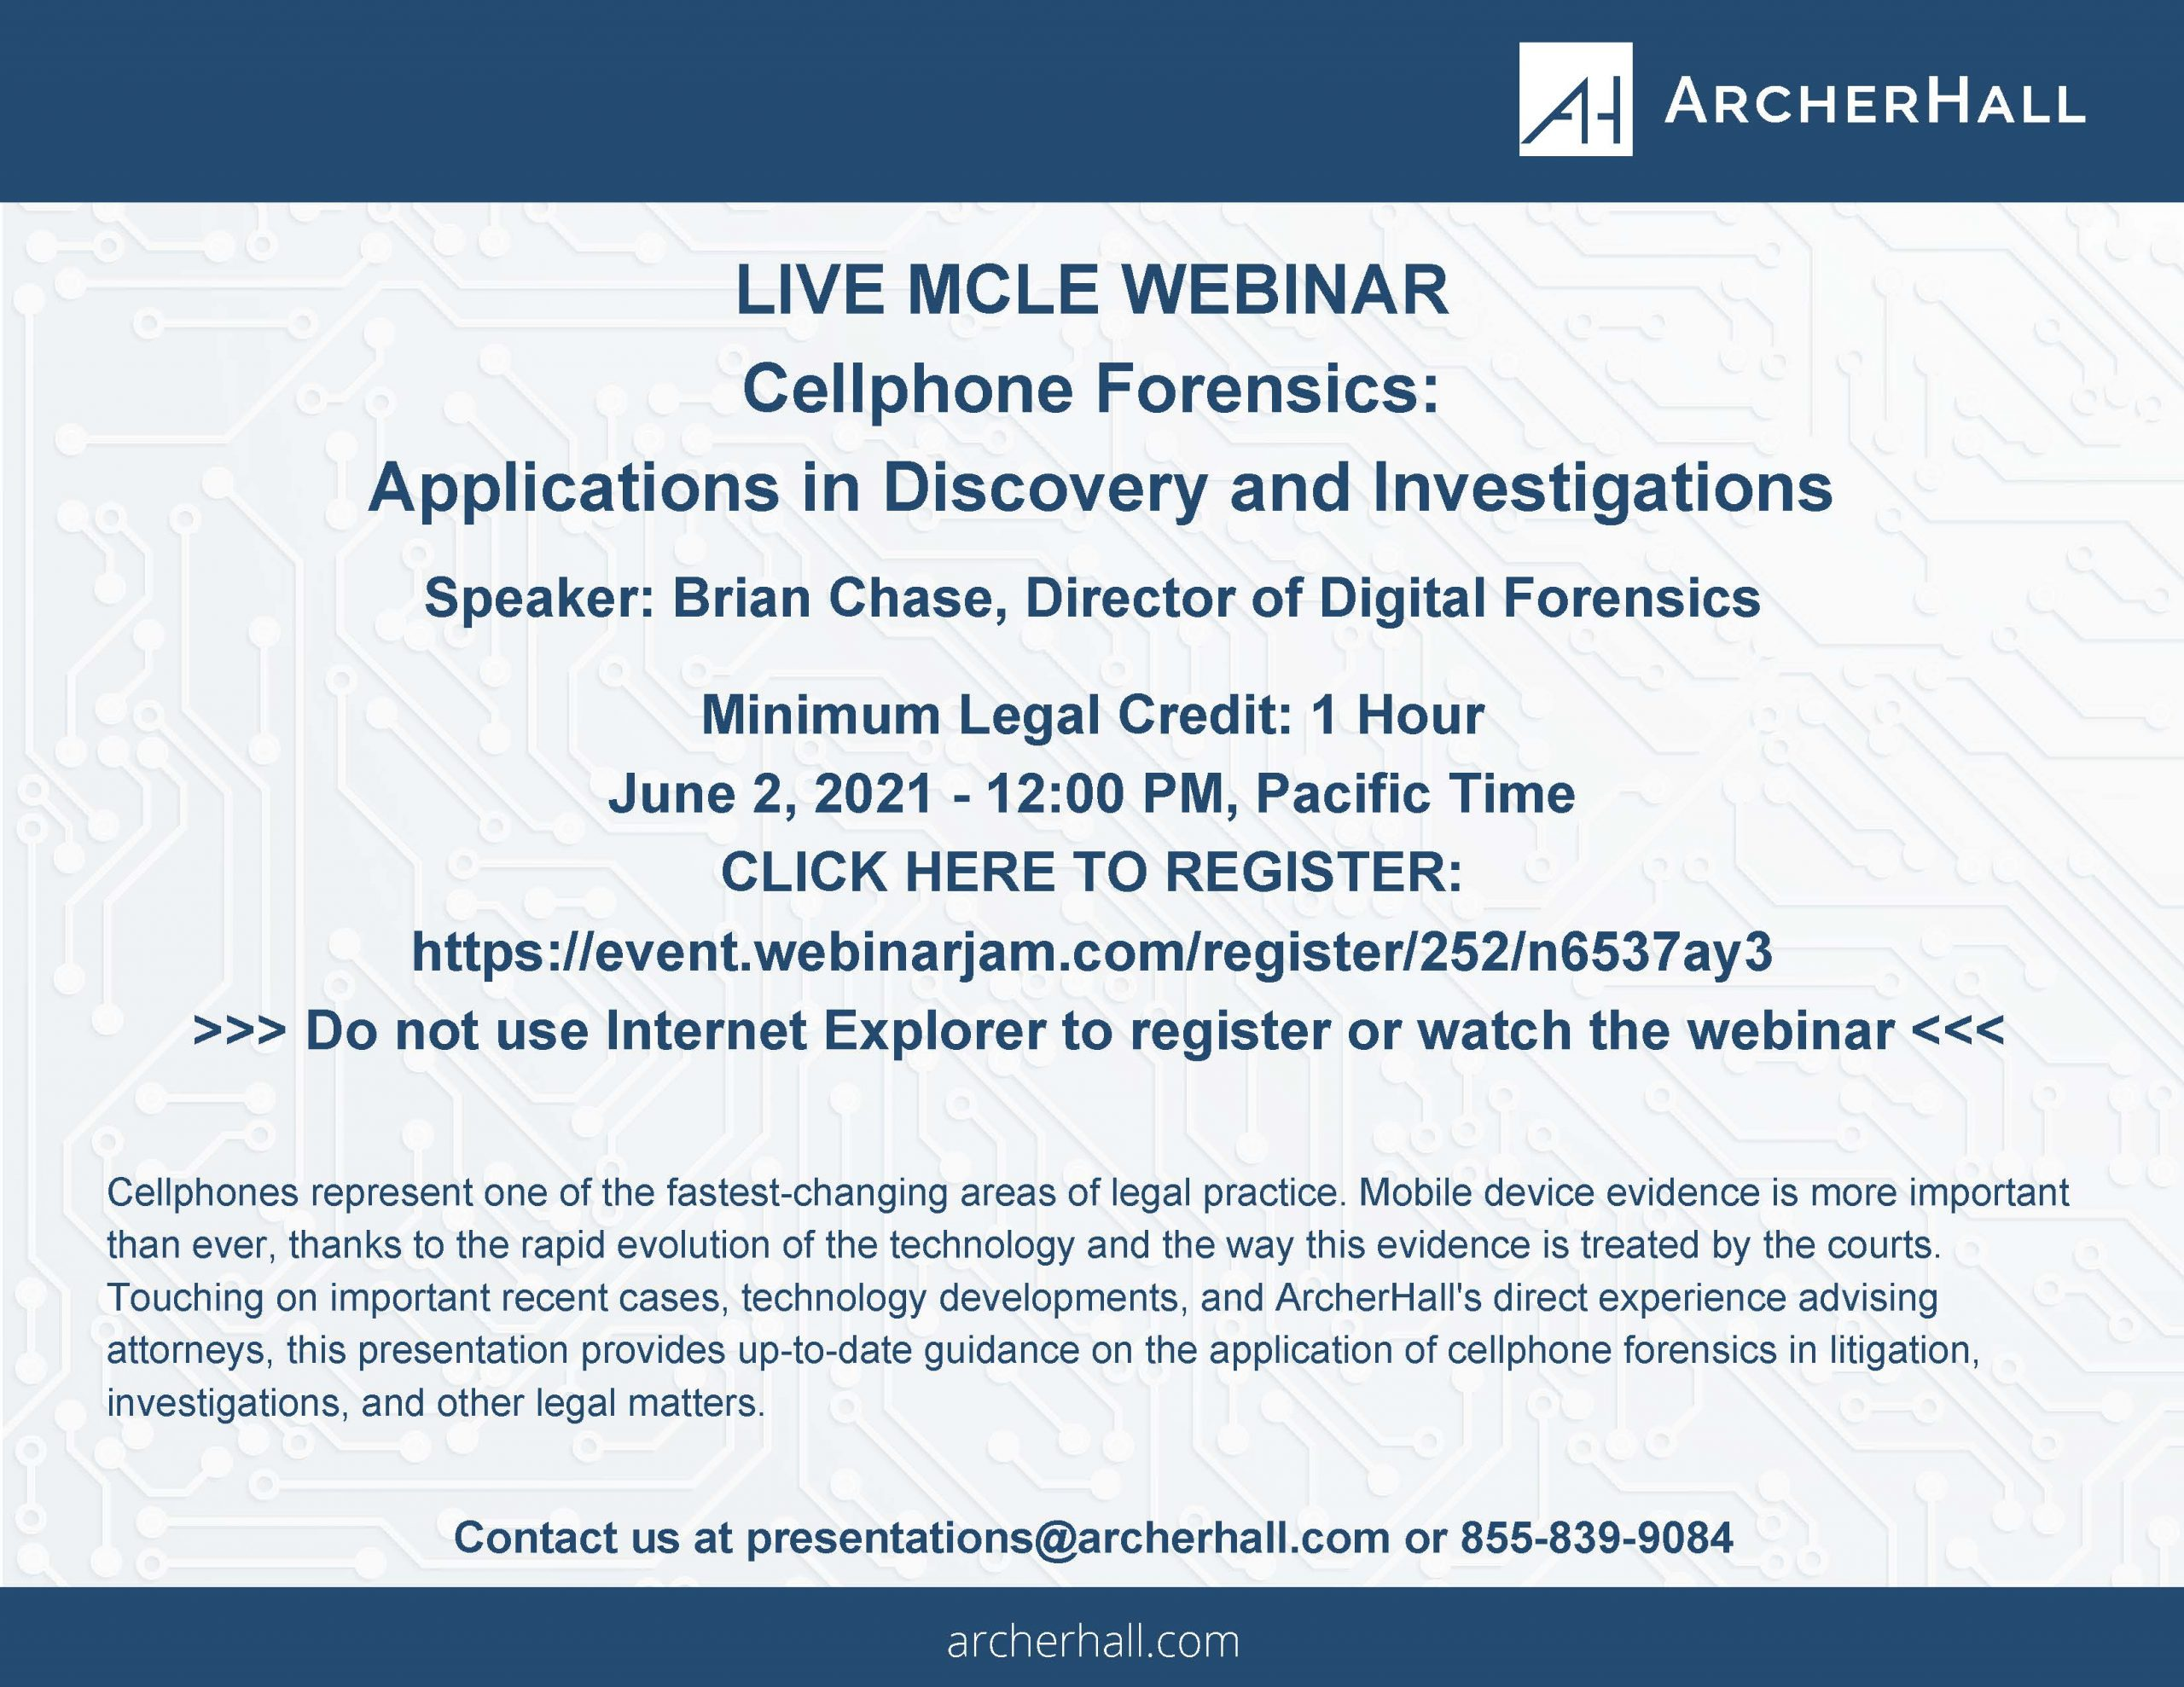 June 2nd: Cellphone Forensics: Applications in Discovery and Investigations